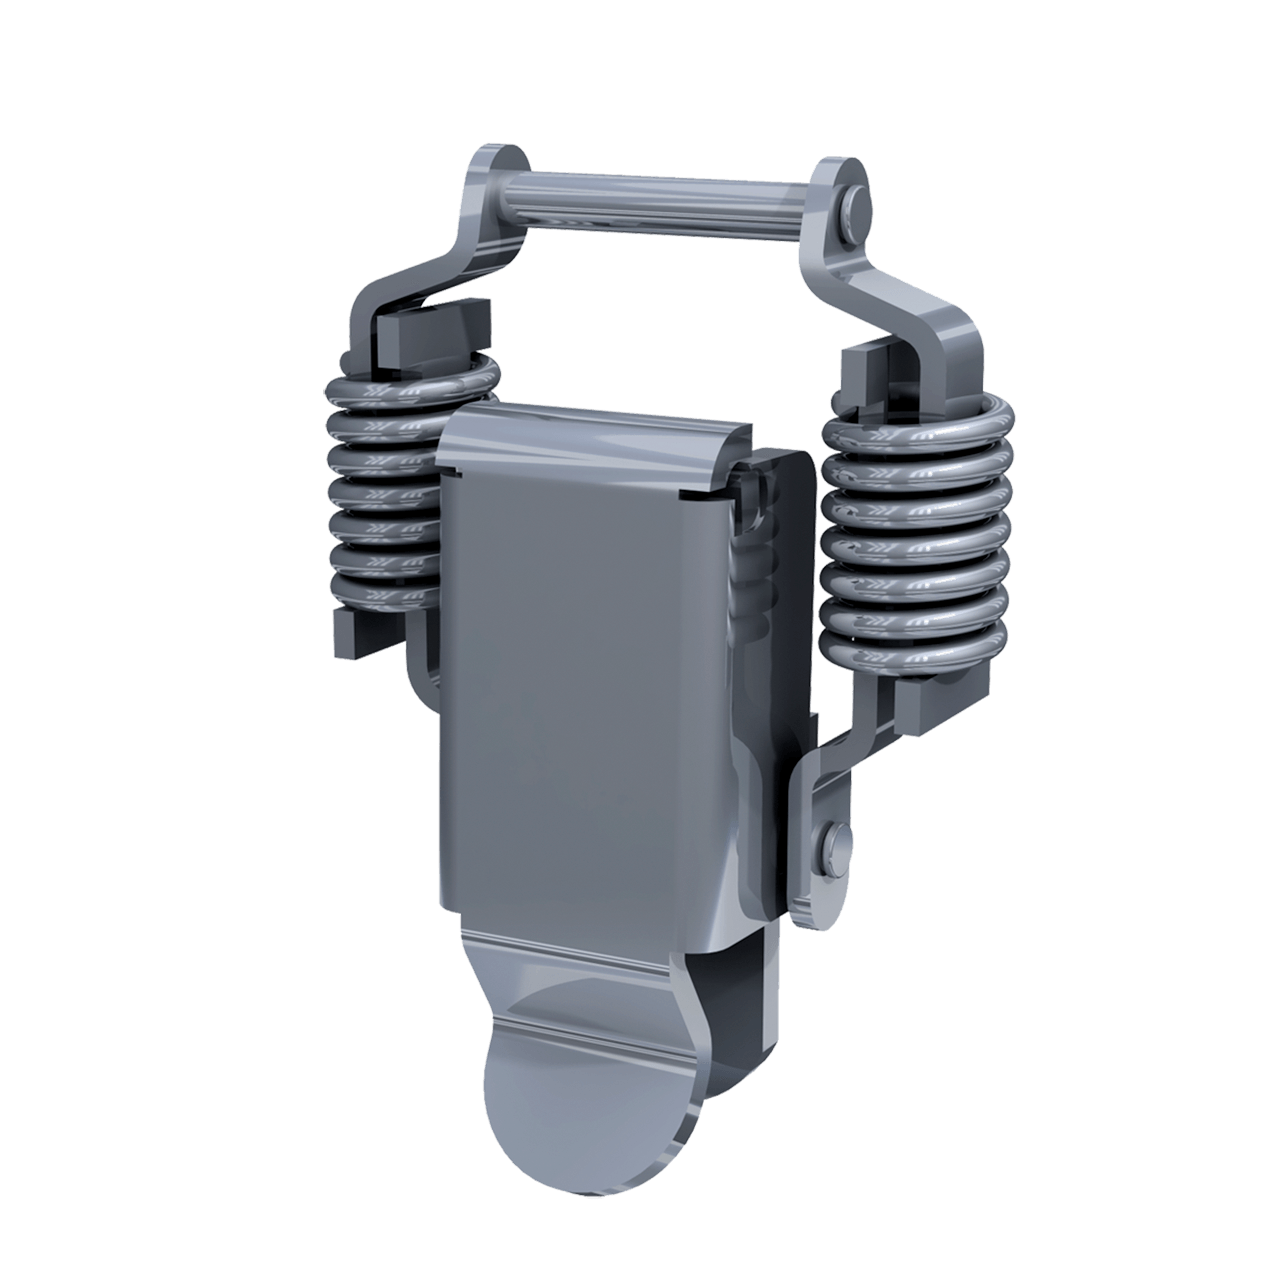 Render of Stainless Steel Compact External Compression Spring Drawlatch